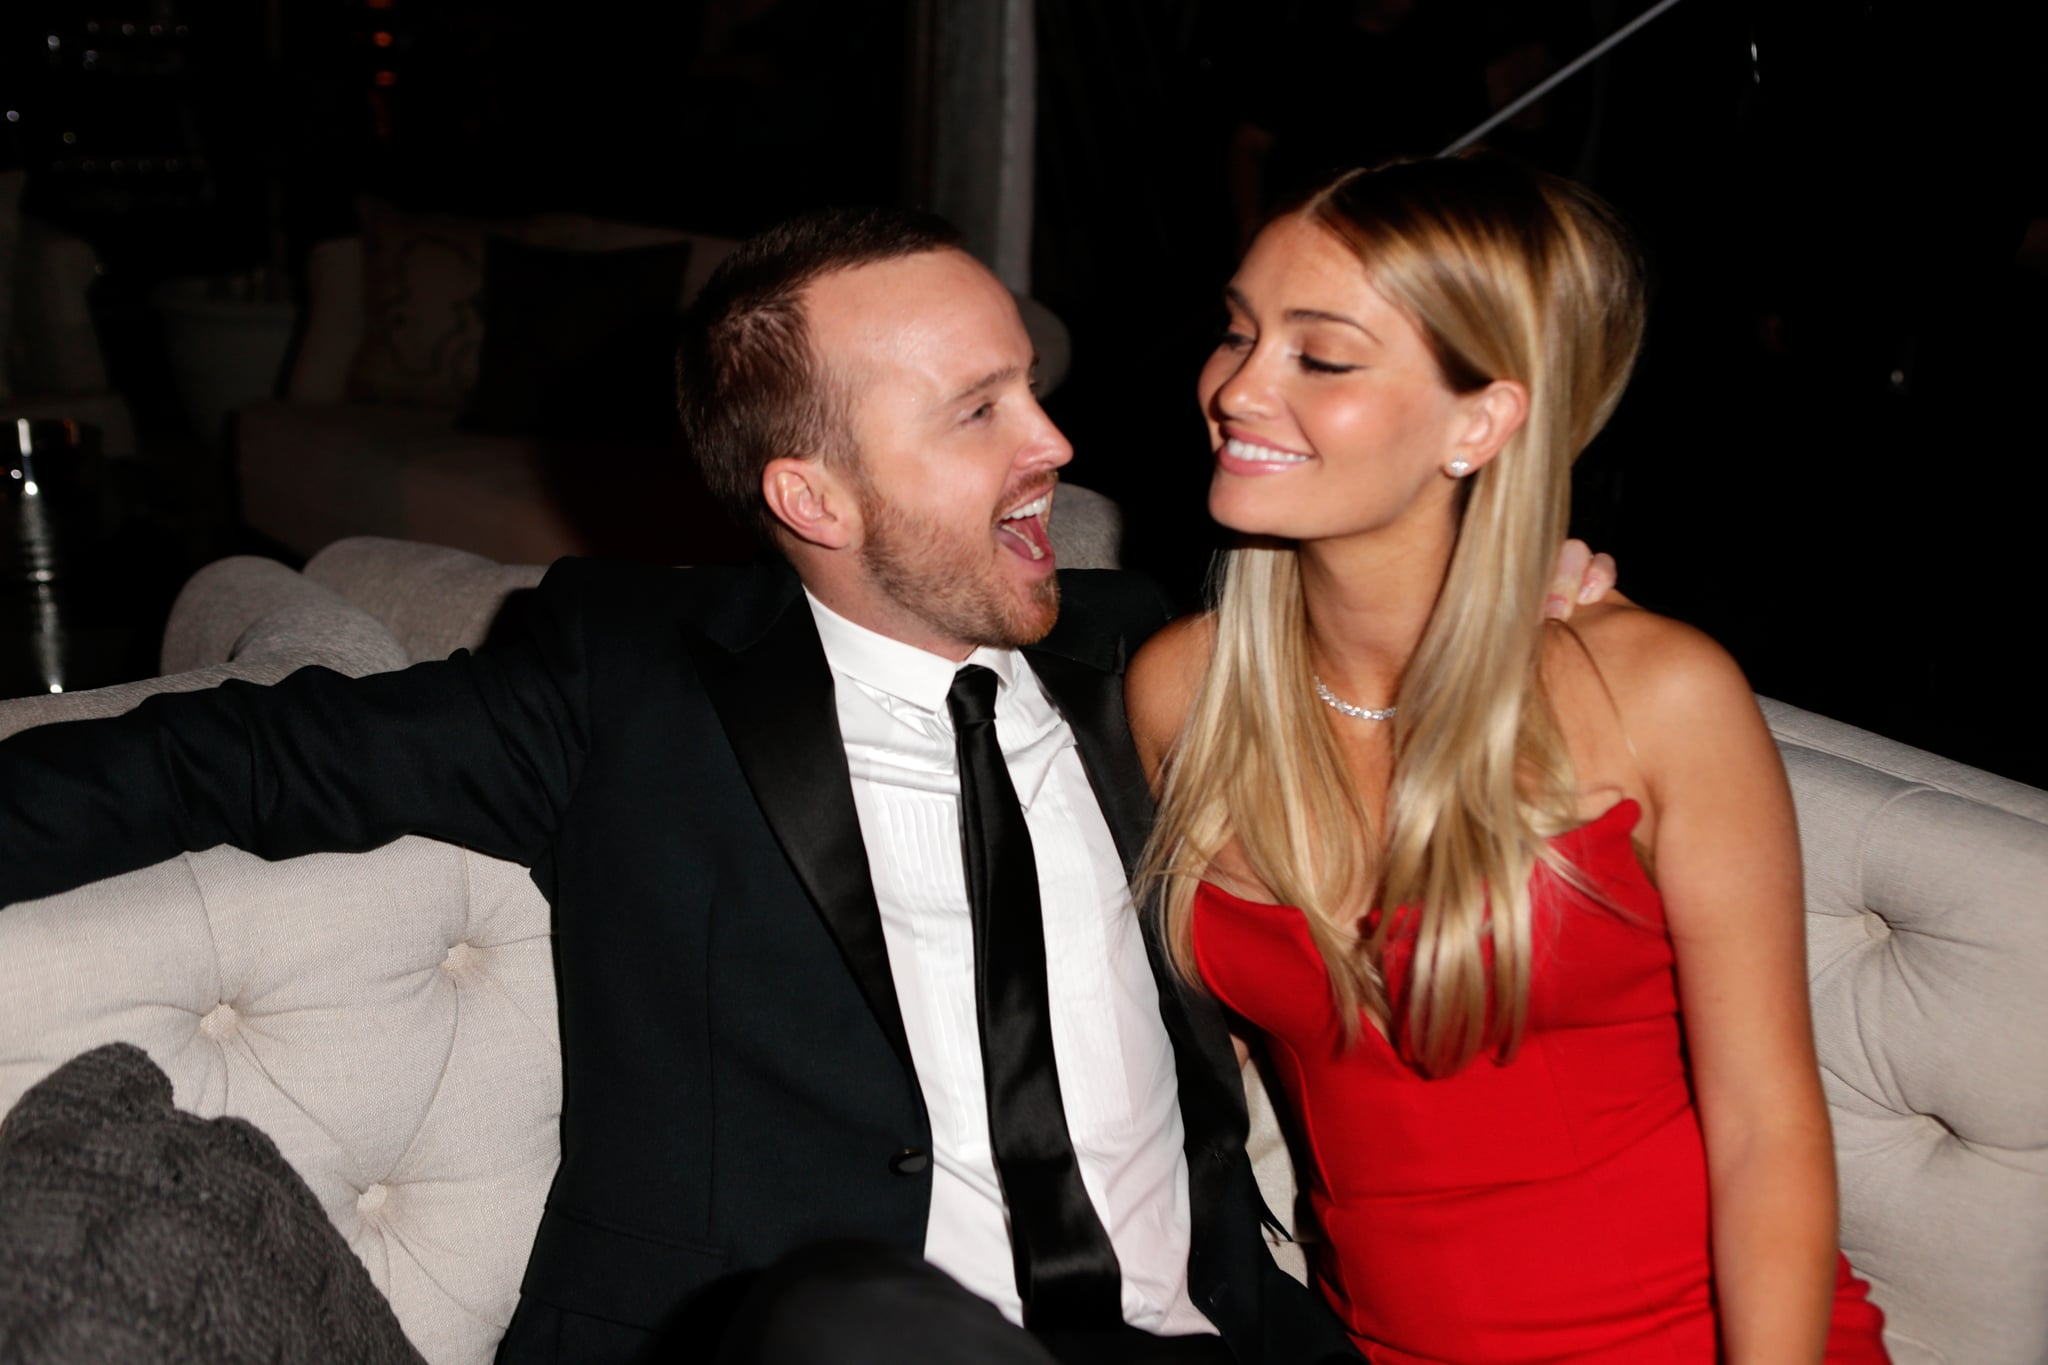 Aaron Paul and his wife, Lauren Parsekian, were just adorable inside the Weinstein Company soiree.